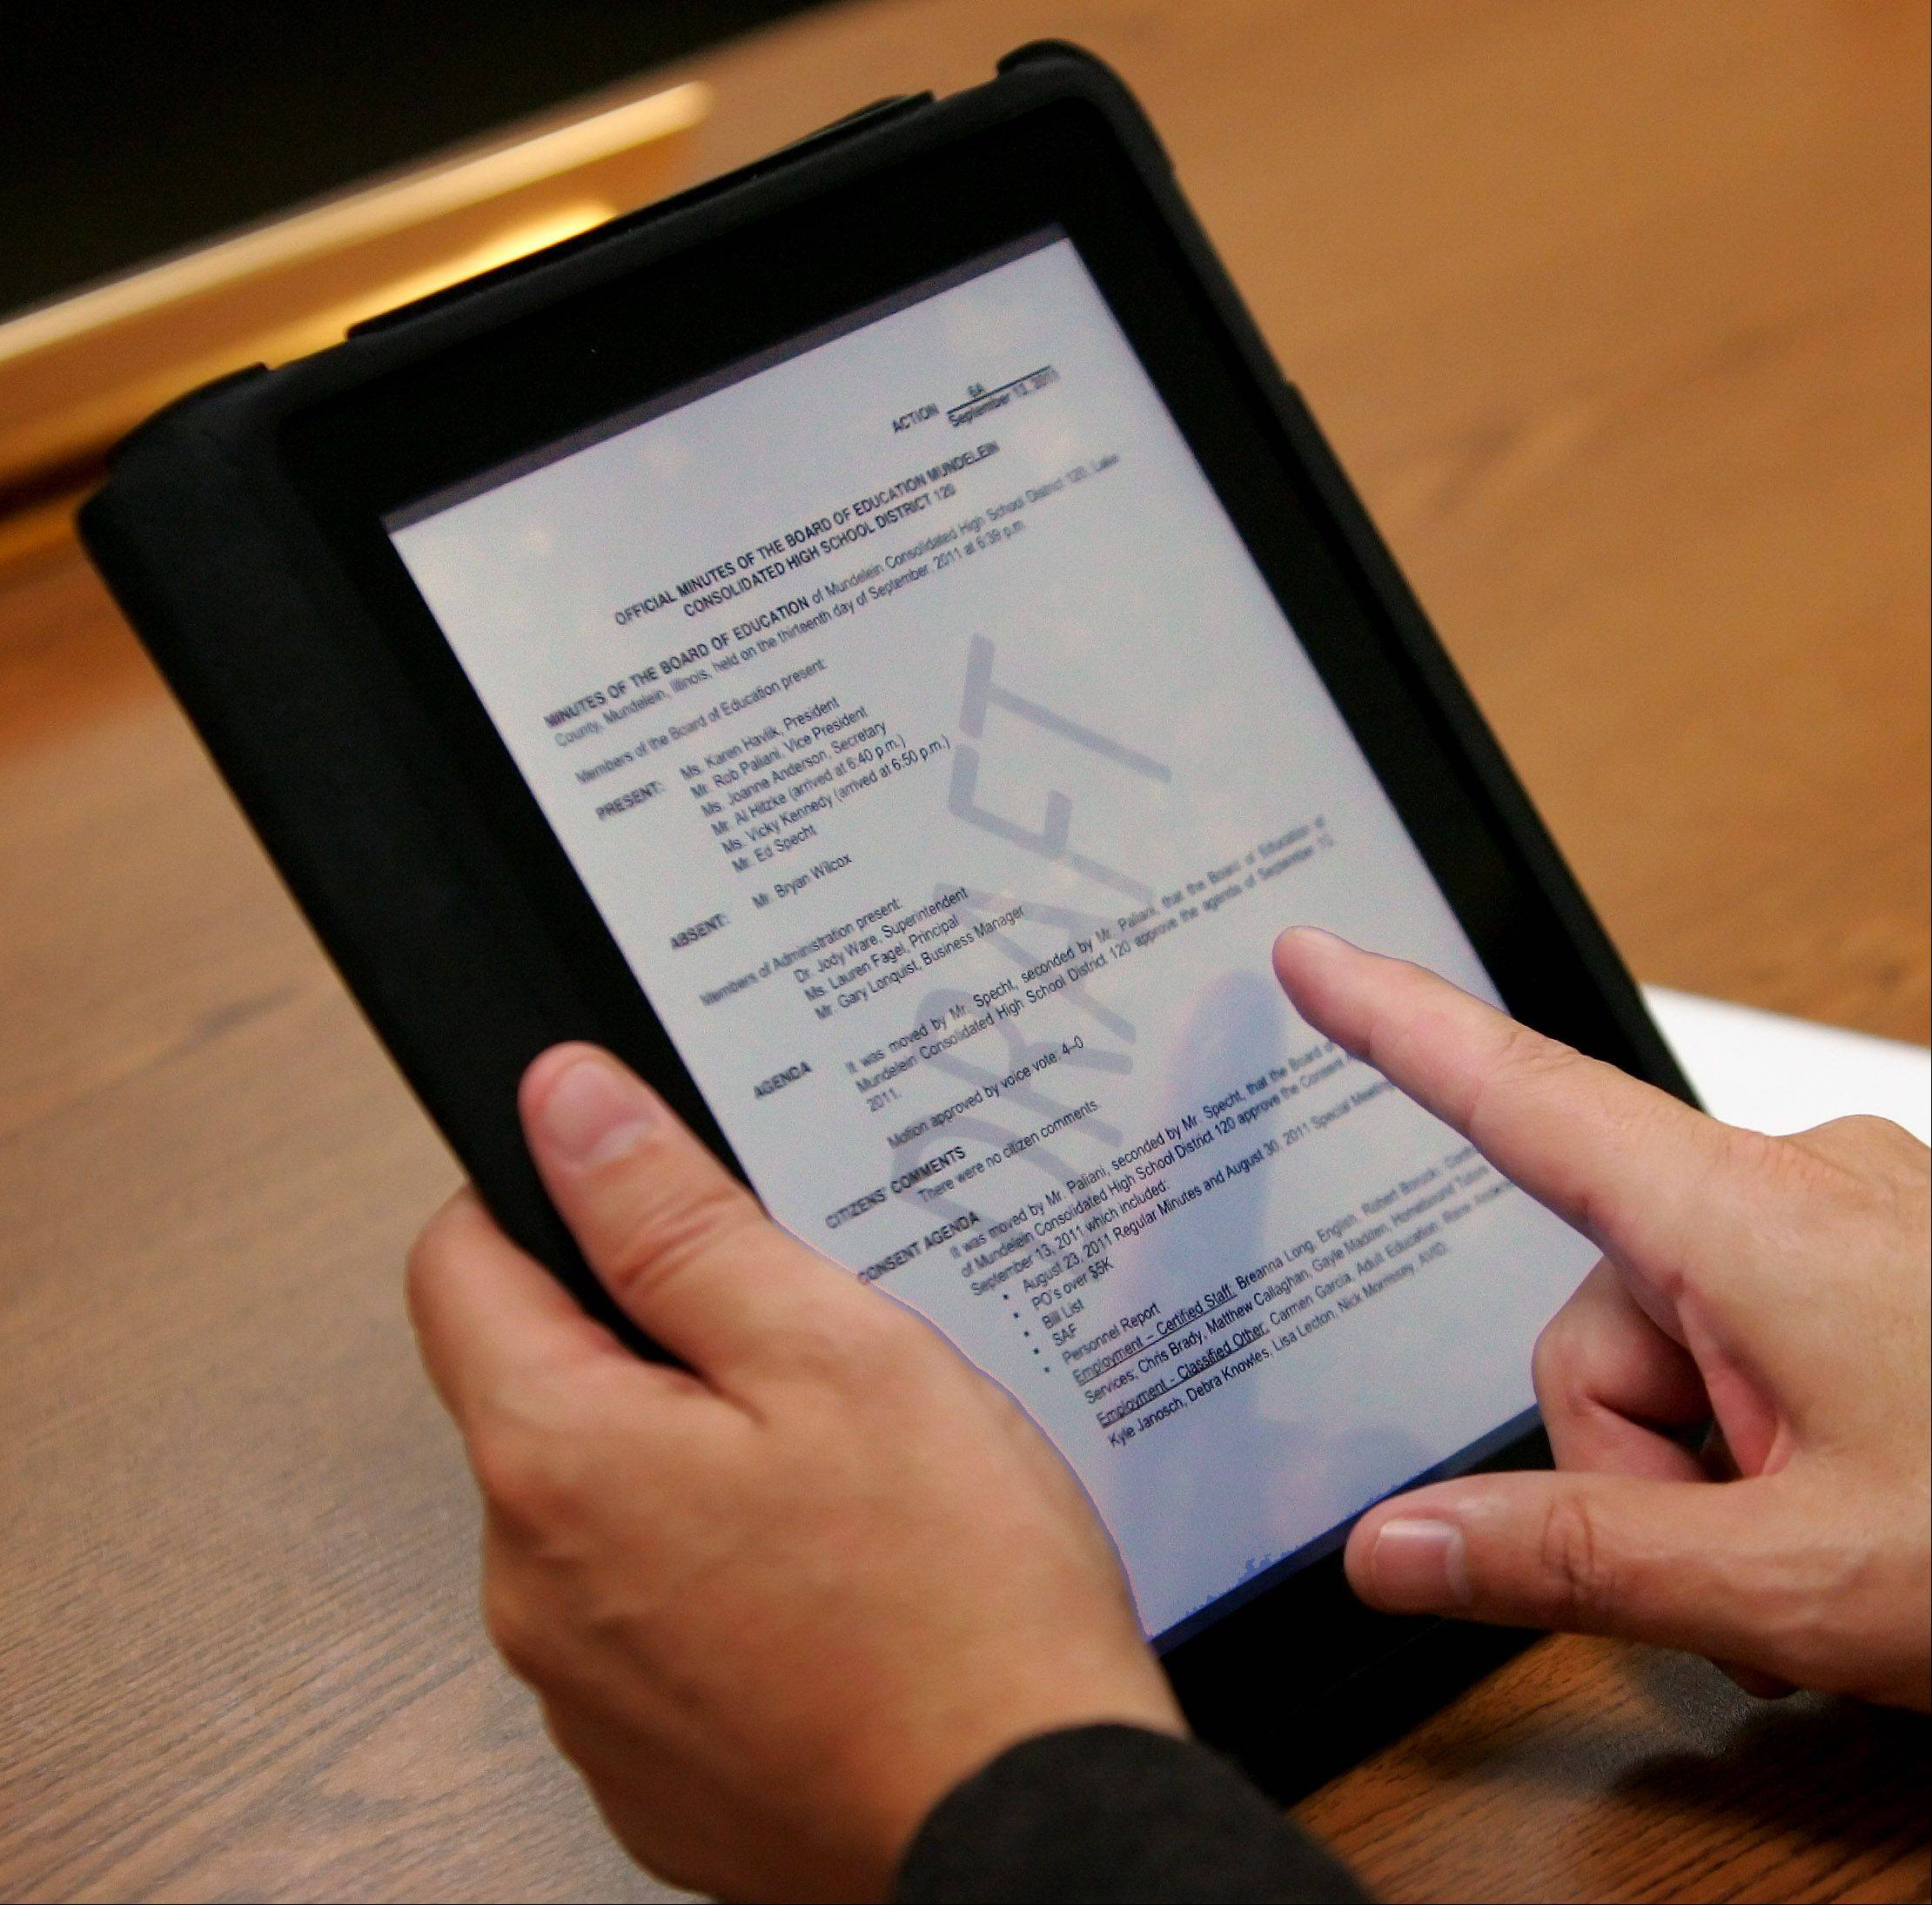 Board members representing the Mundelein High School District and other government agencies have traded thick paper packets for iPads that allow them to read important documents digitally. A Chicago-area government watchdog supports paperless meetings but reminded politicians that publicly owned iPads are subject to review under the Freedom of Information Act.